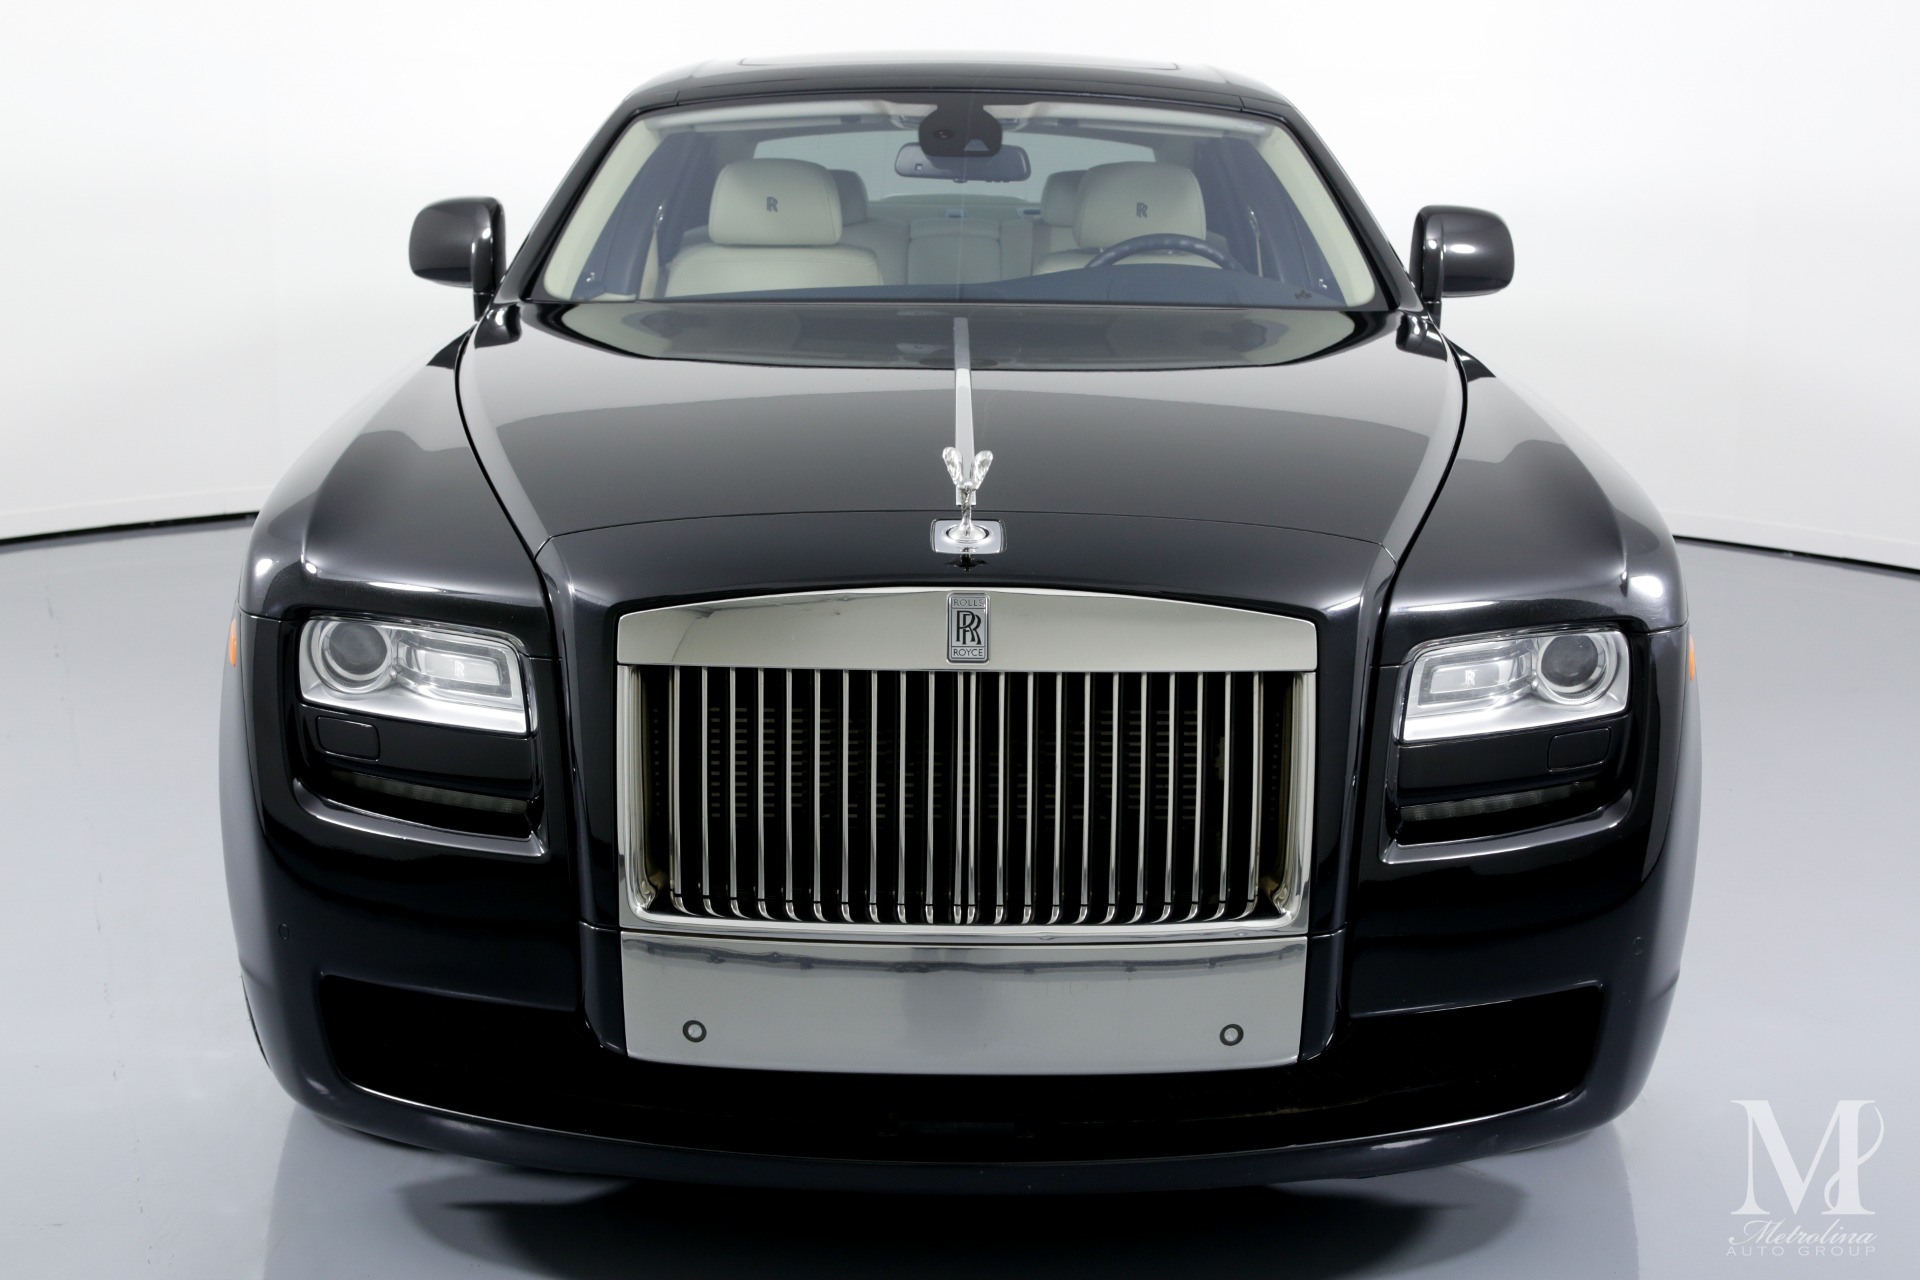 Used 2011 Rolls-Royce Ghost Base 4dr Sedan for sale Sold at Metrolina Auto Group in Charlotte NC 28217 - 3